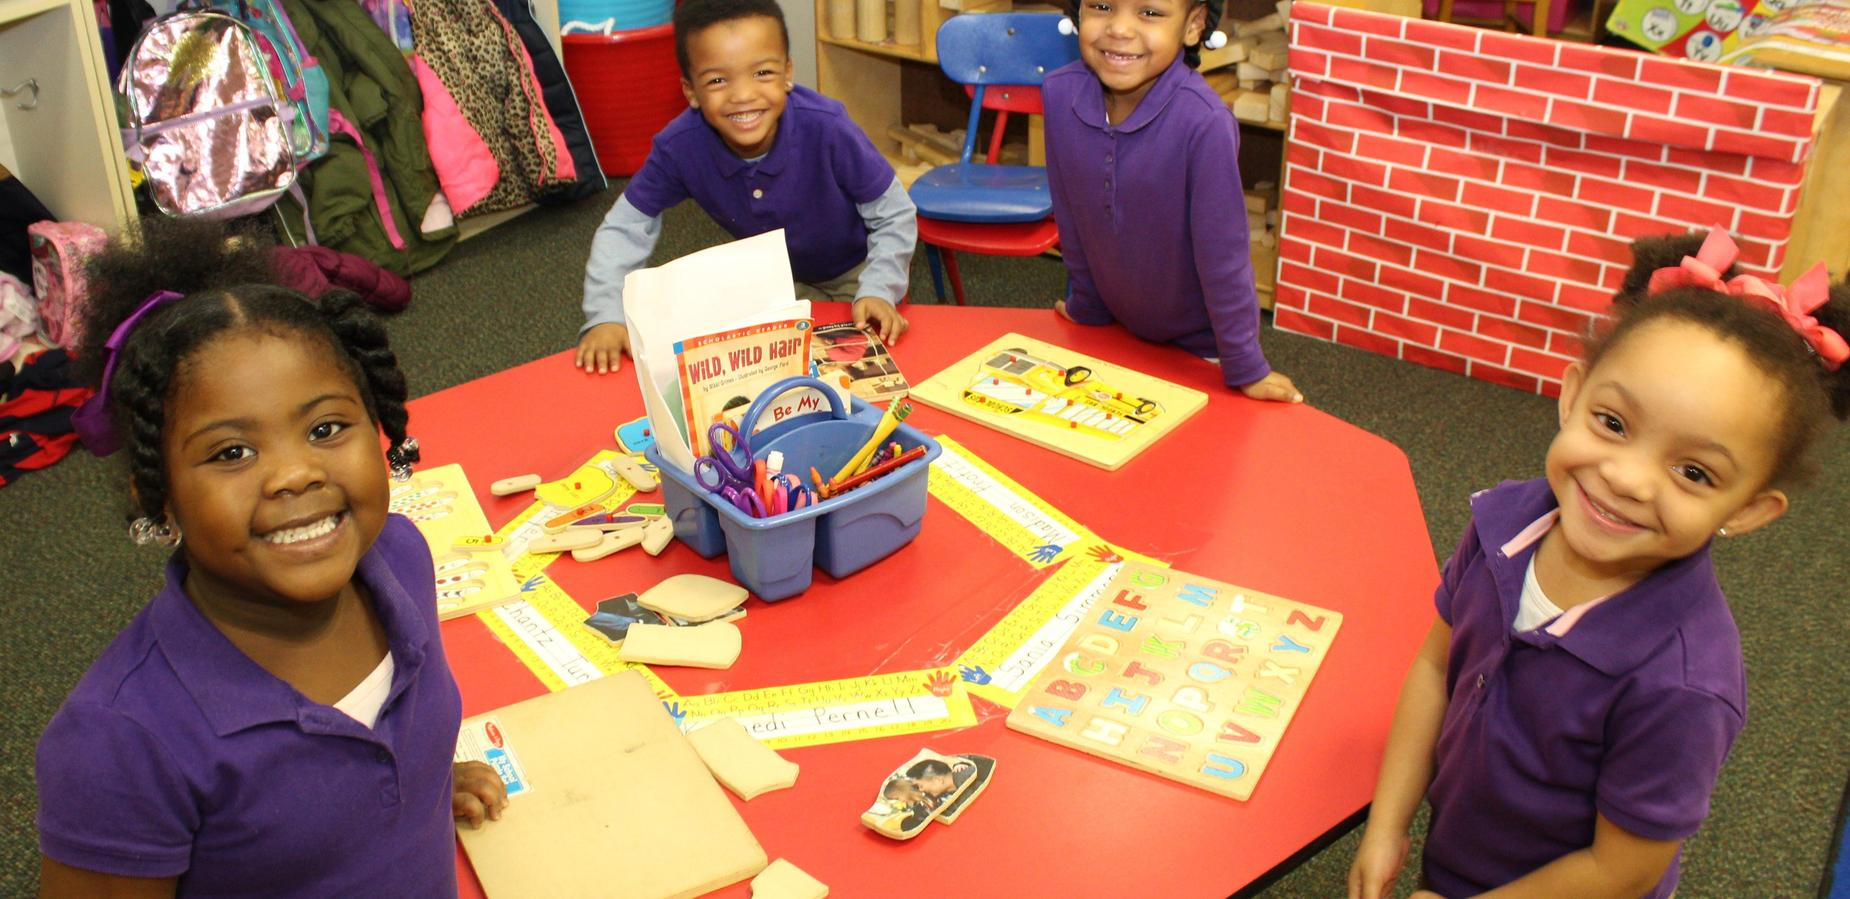 Four young children standing around a red table smiling as they work on puzzles.